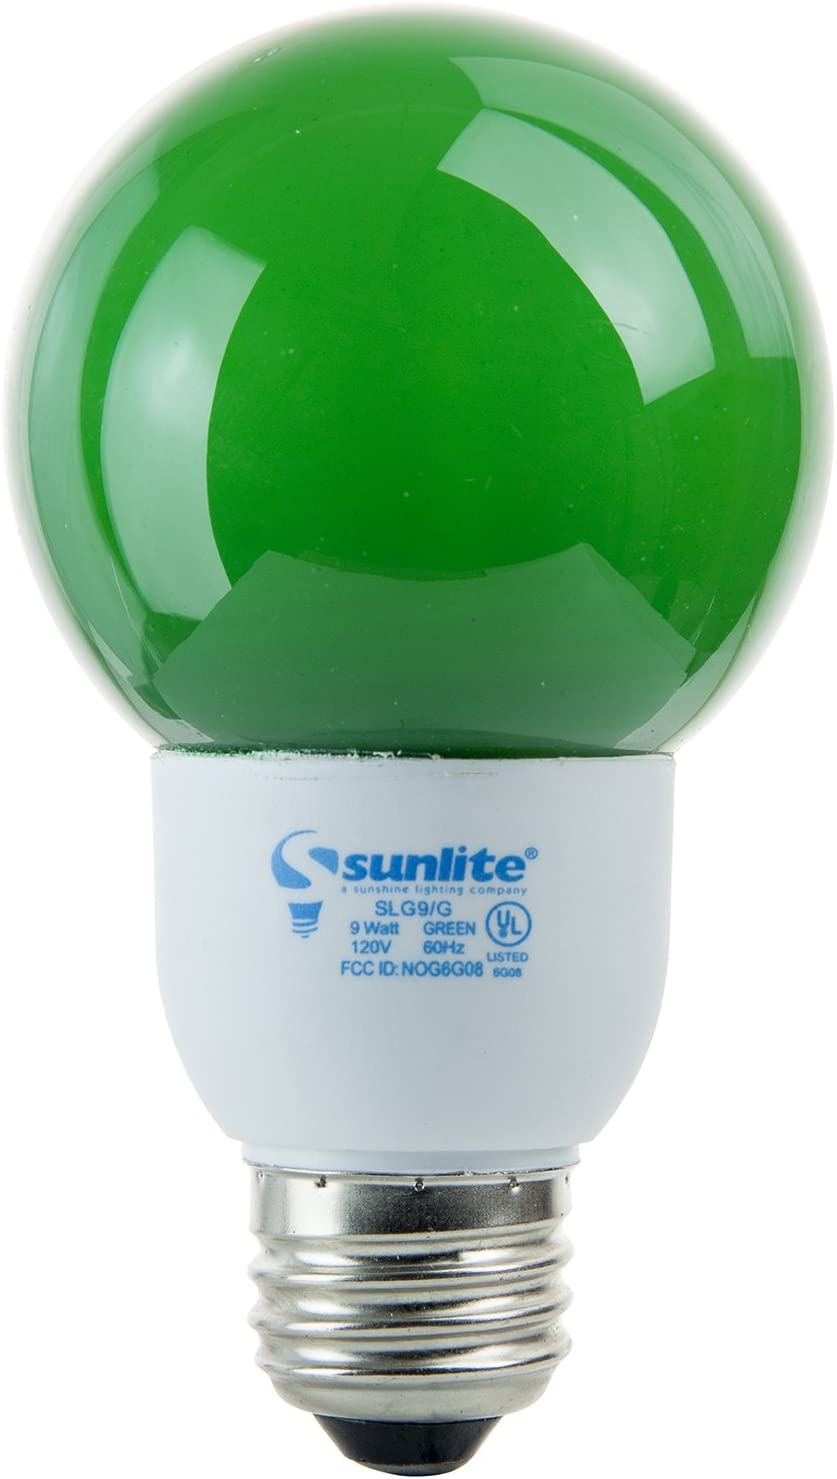 SUNLITE Compact Fluorescent 9W Colored Green Globes Bulb